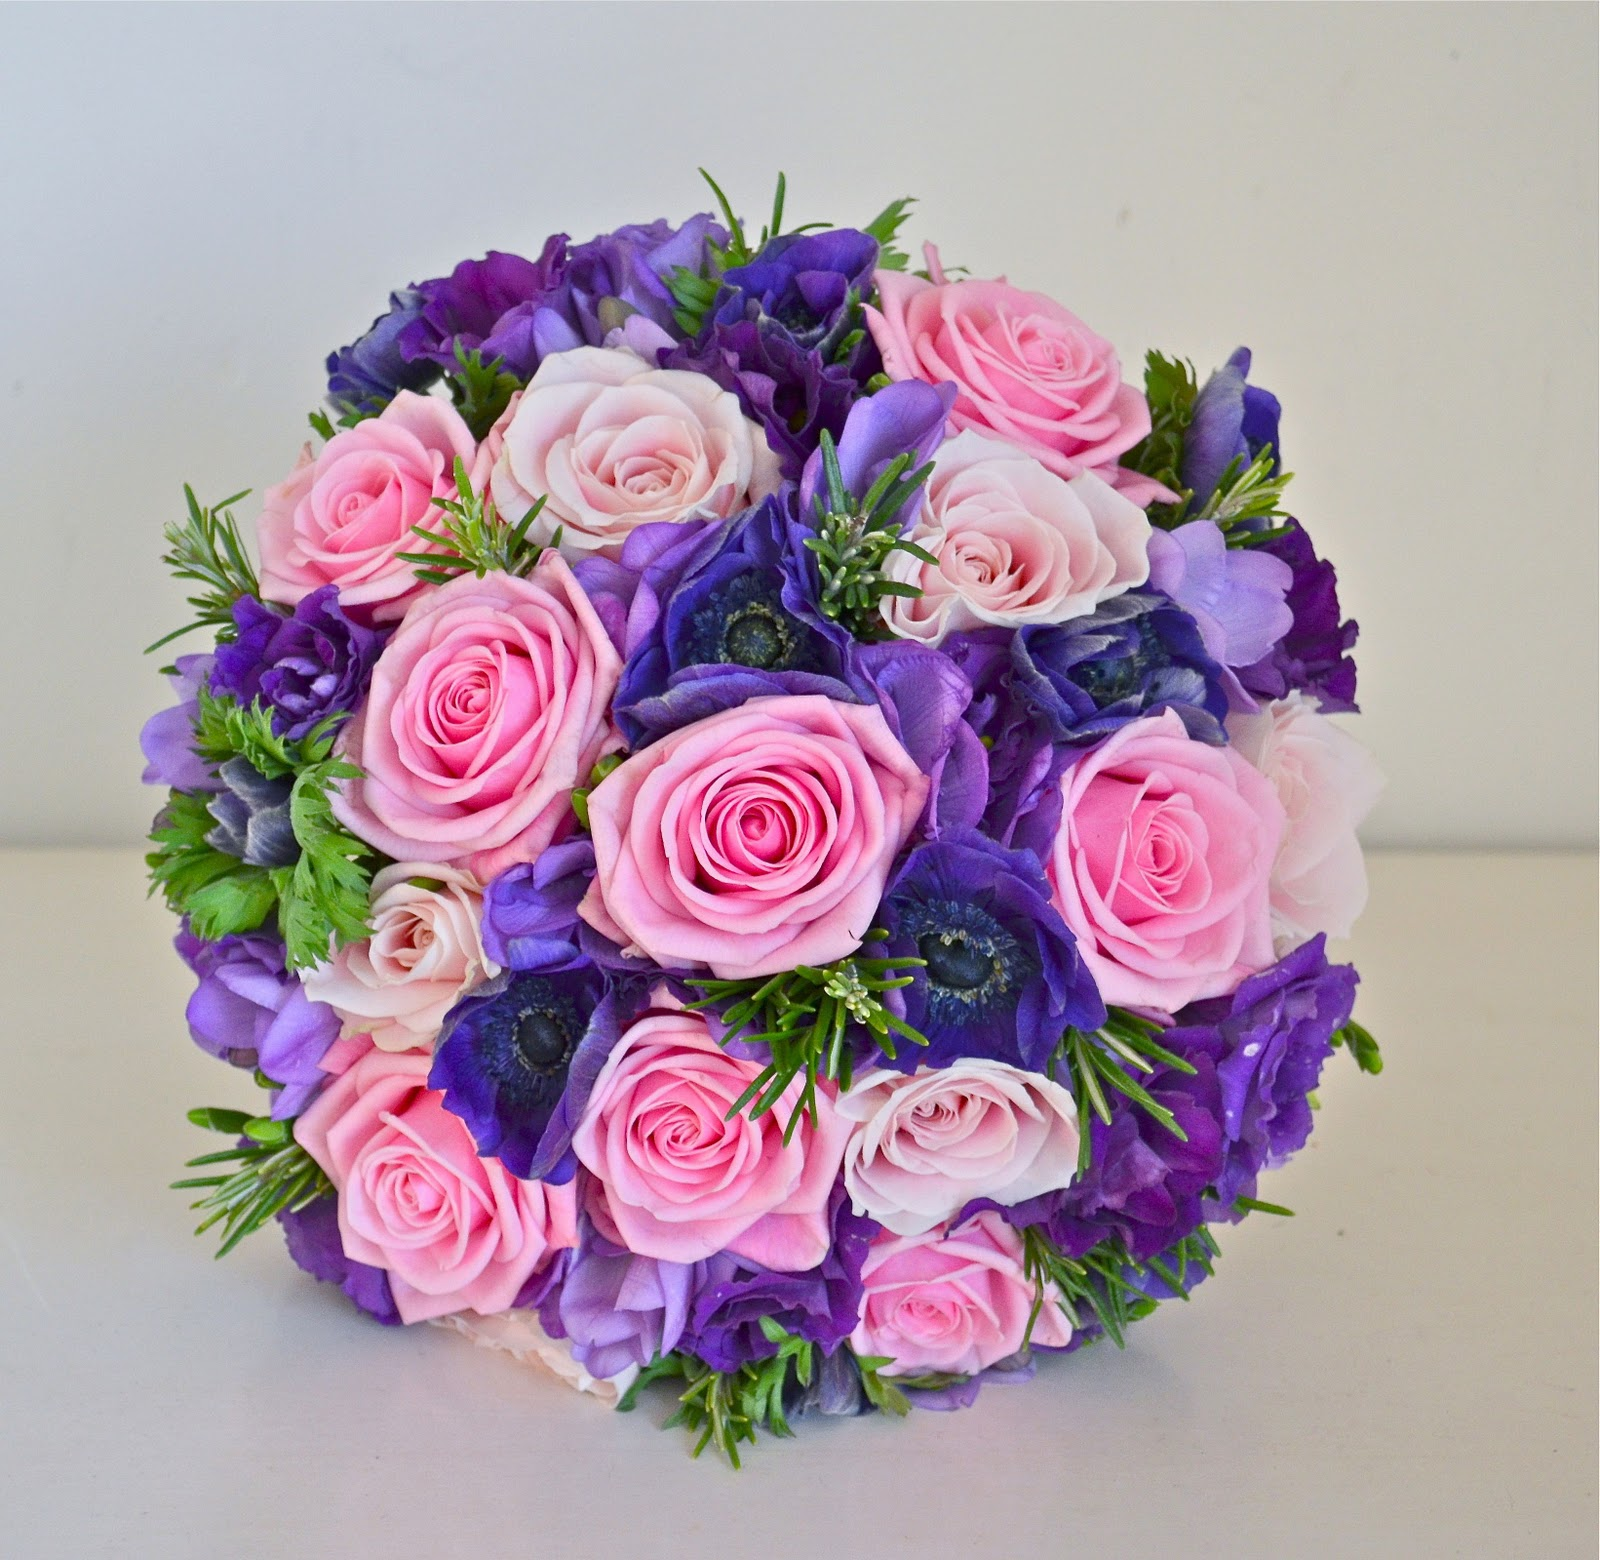 Wedding Flowers Blog: Jonquil's Pink And Purple Wedding